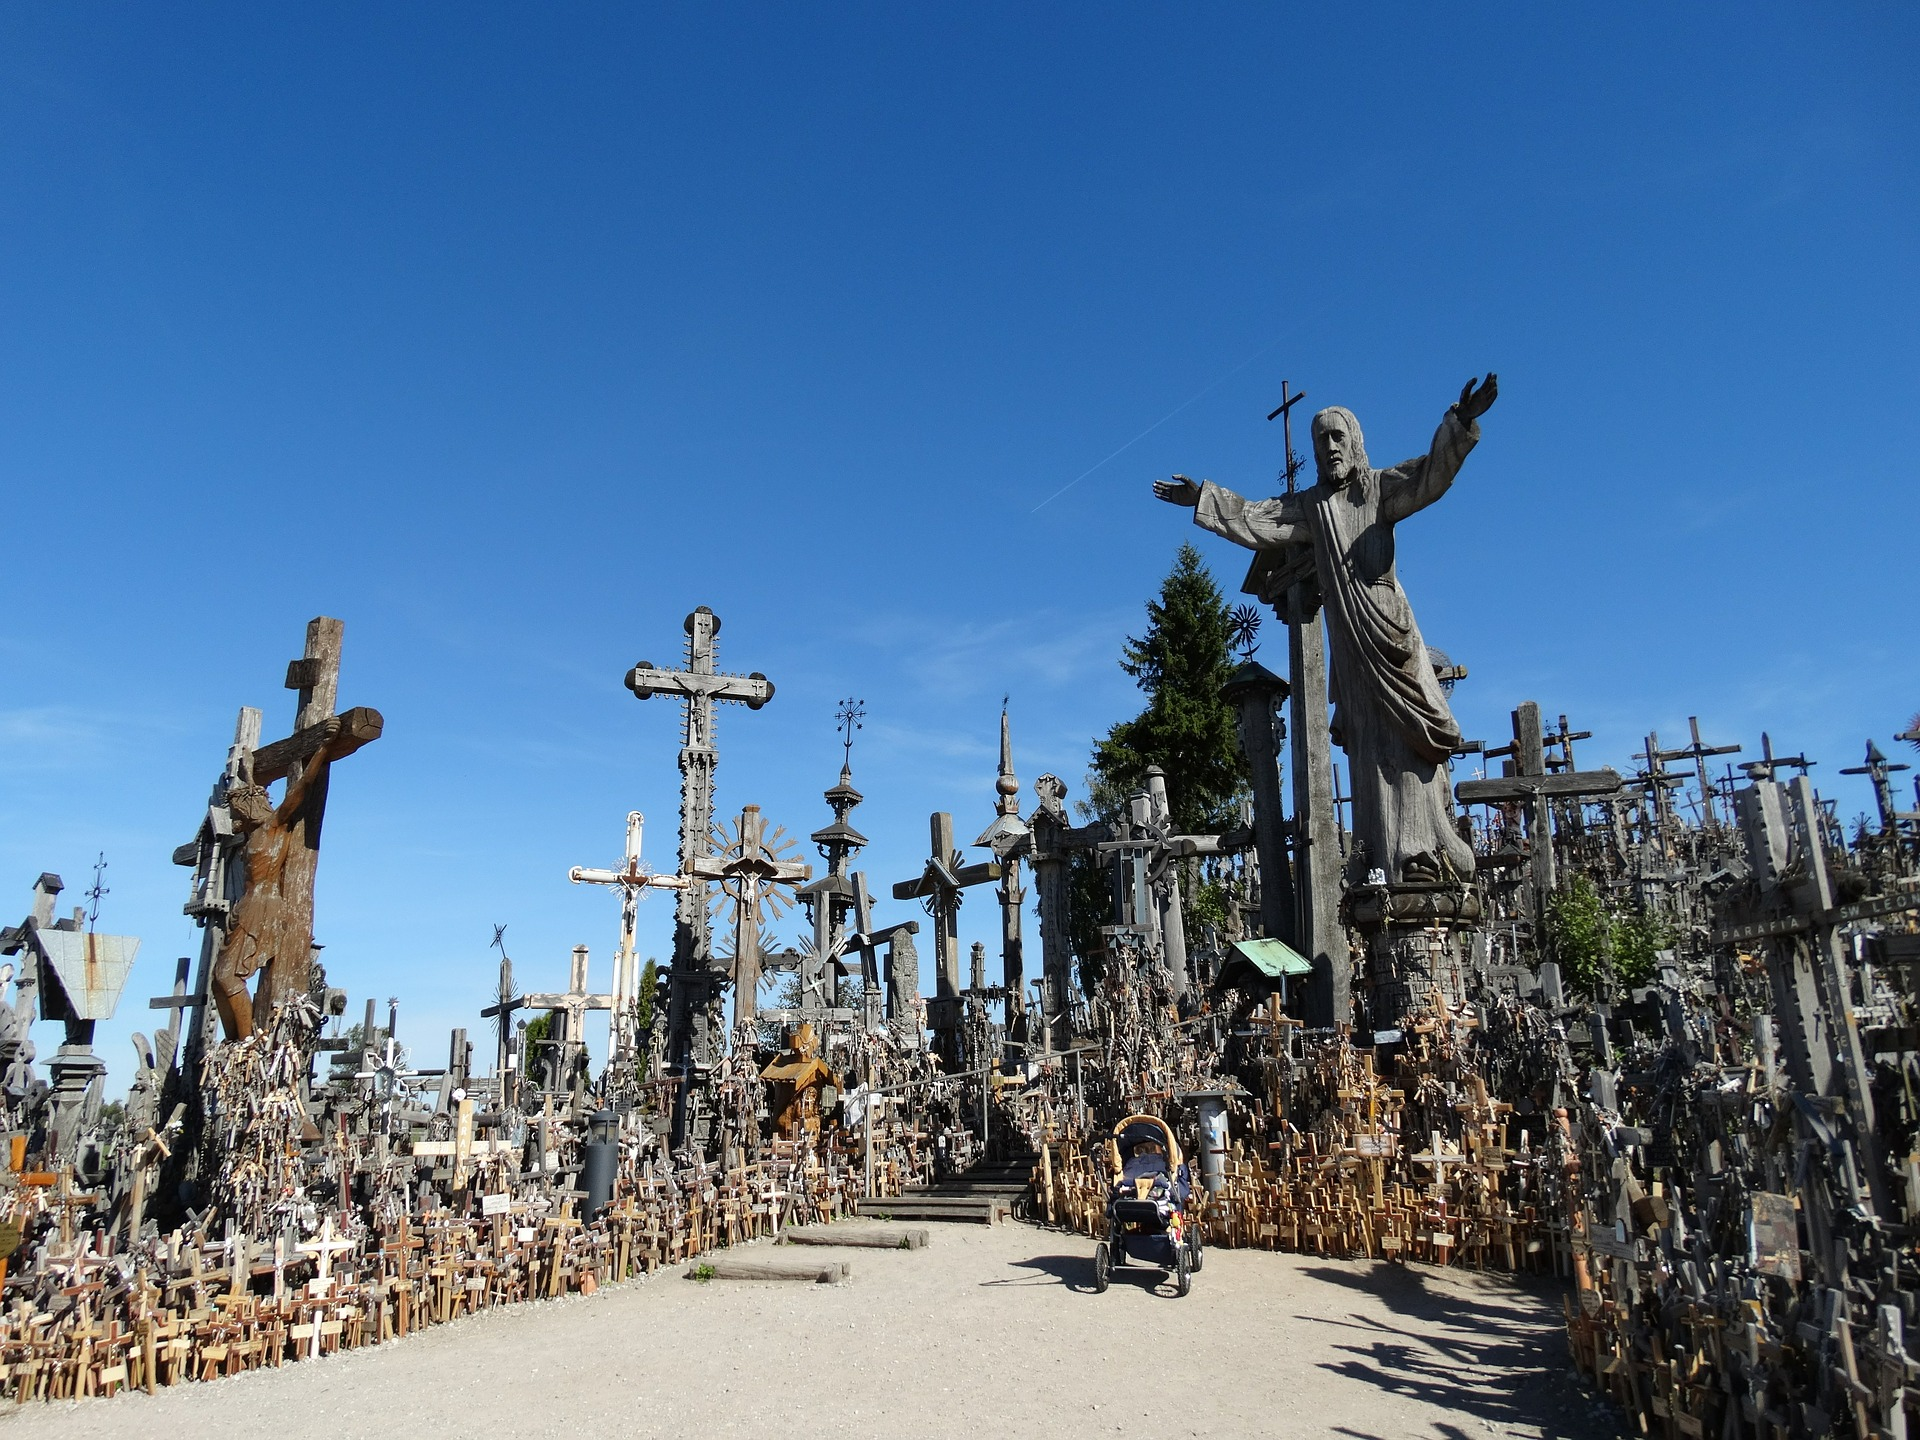 hill-of-crosses-374763_1920